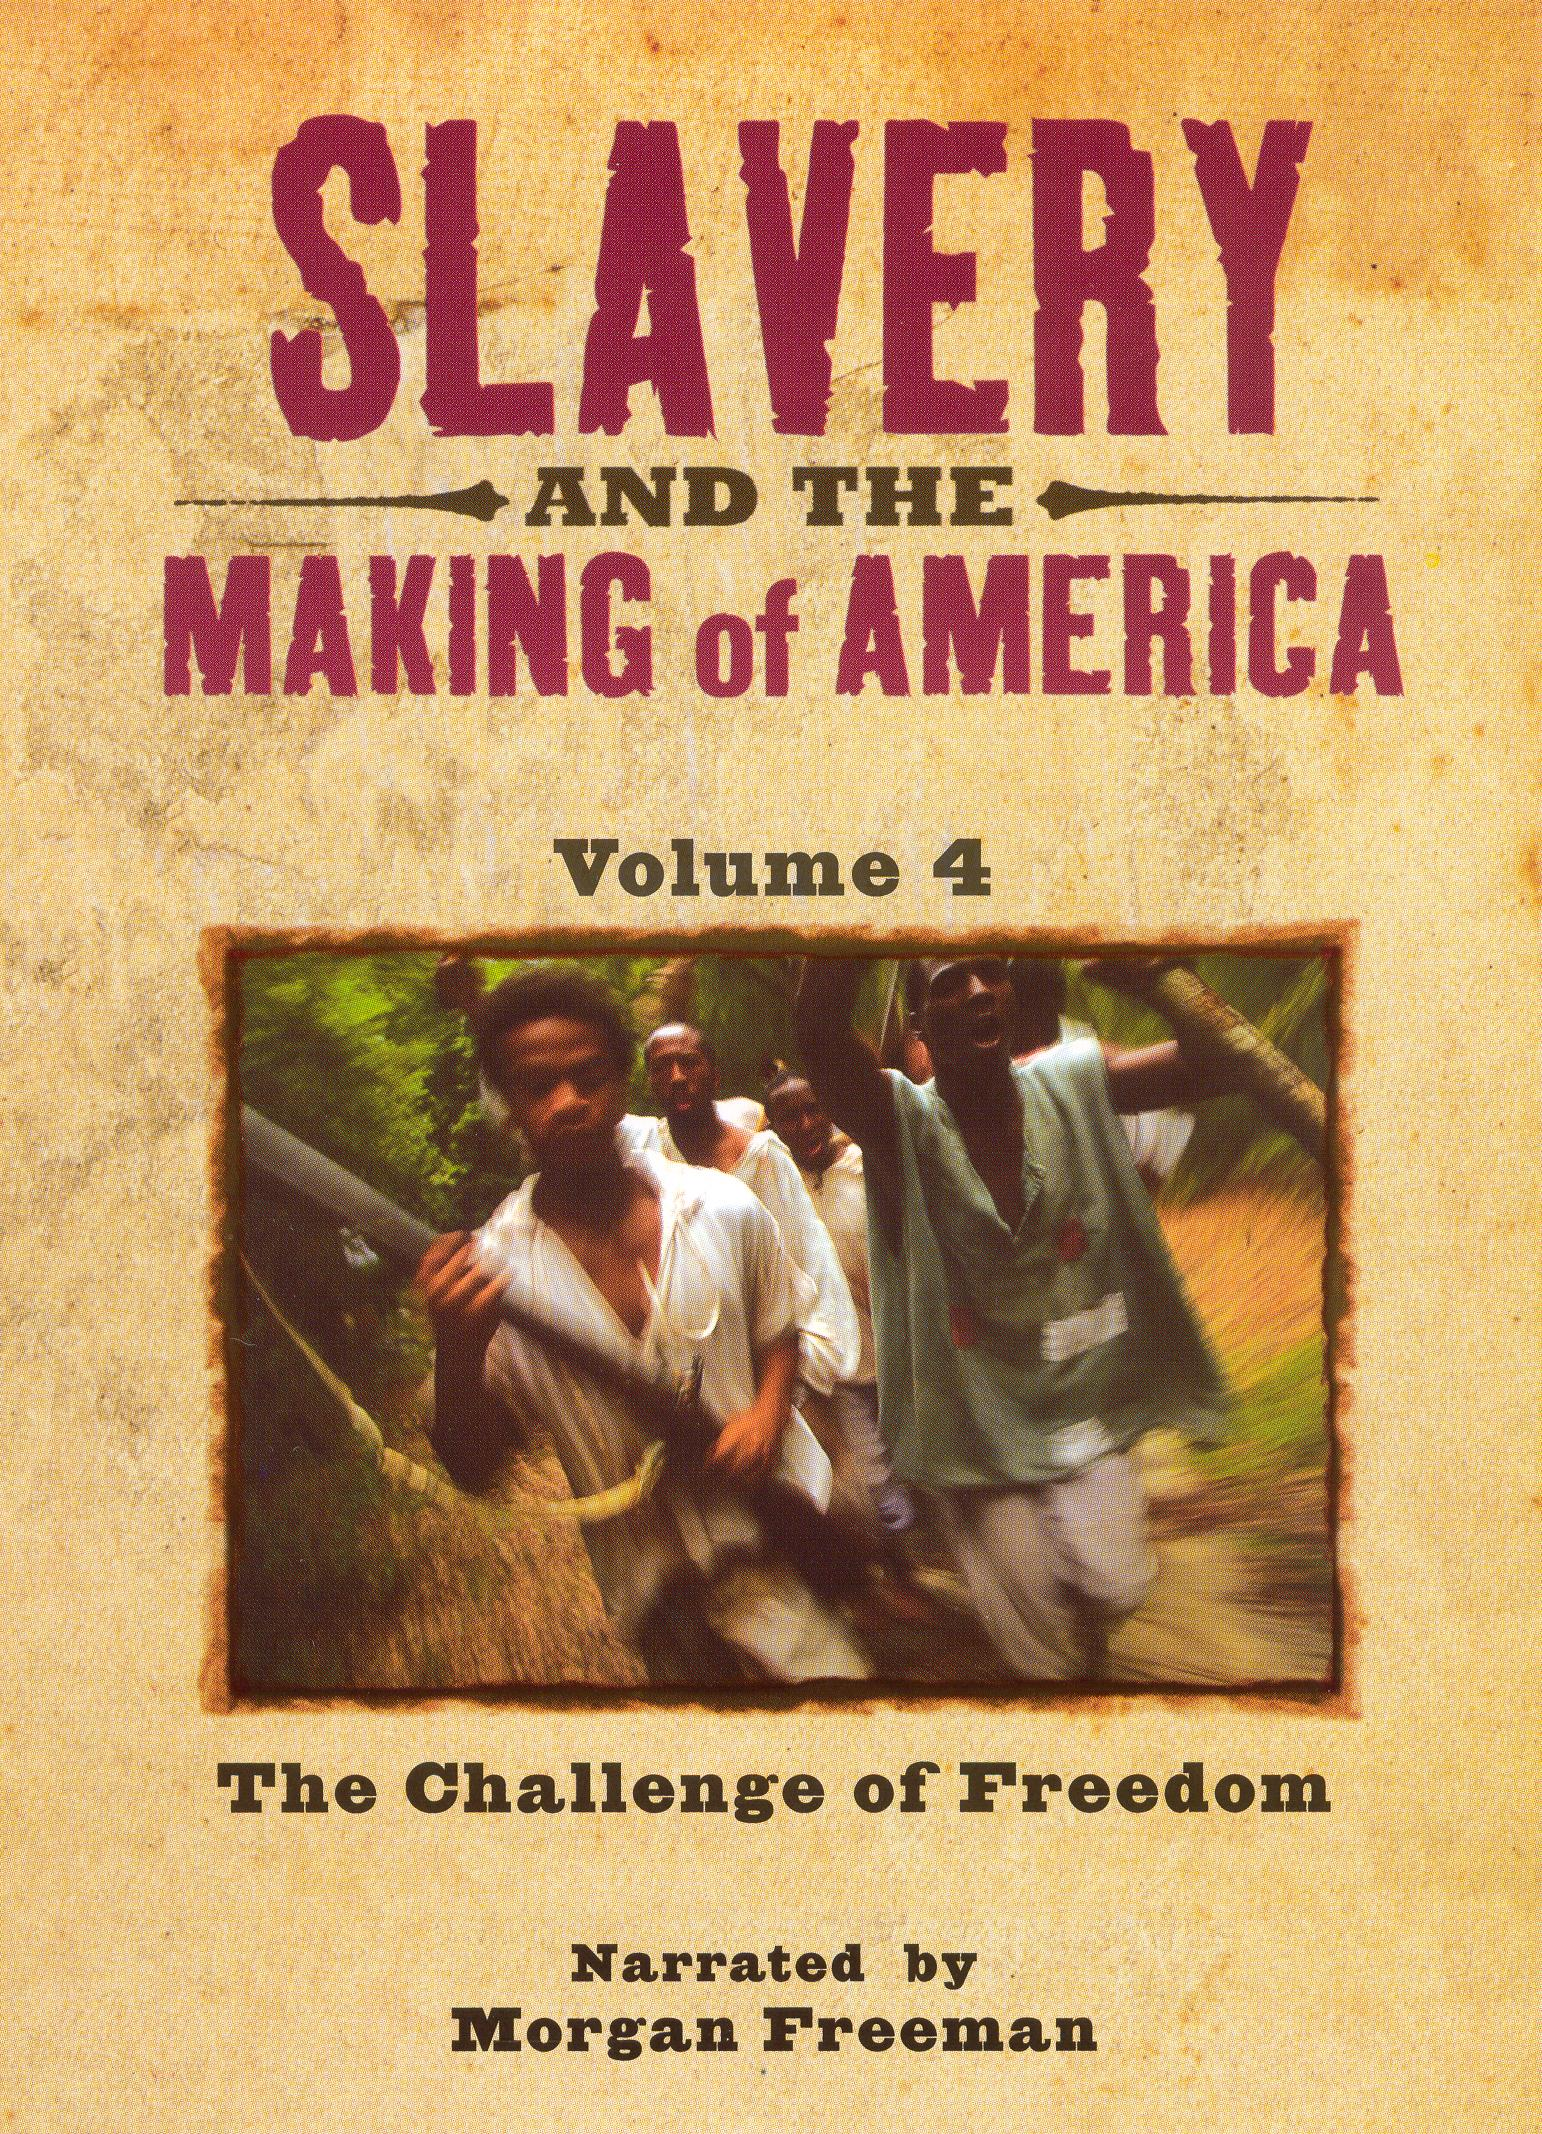 Slavery and the Making of America, Episode 4: The Challenge of Freedom